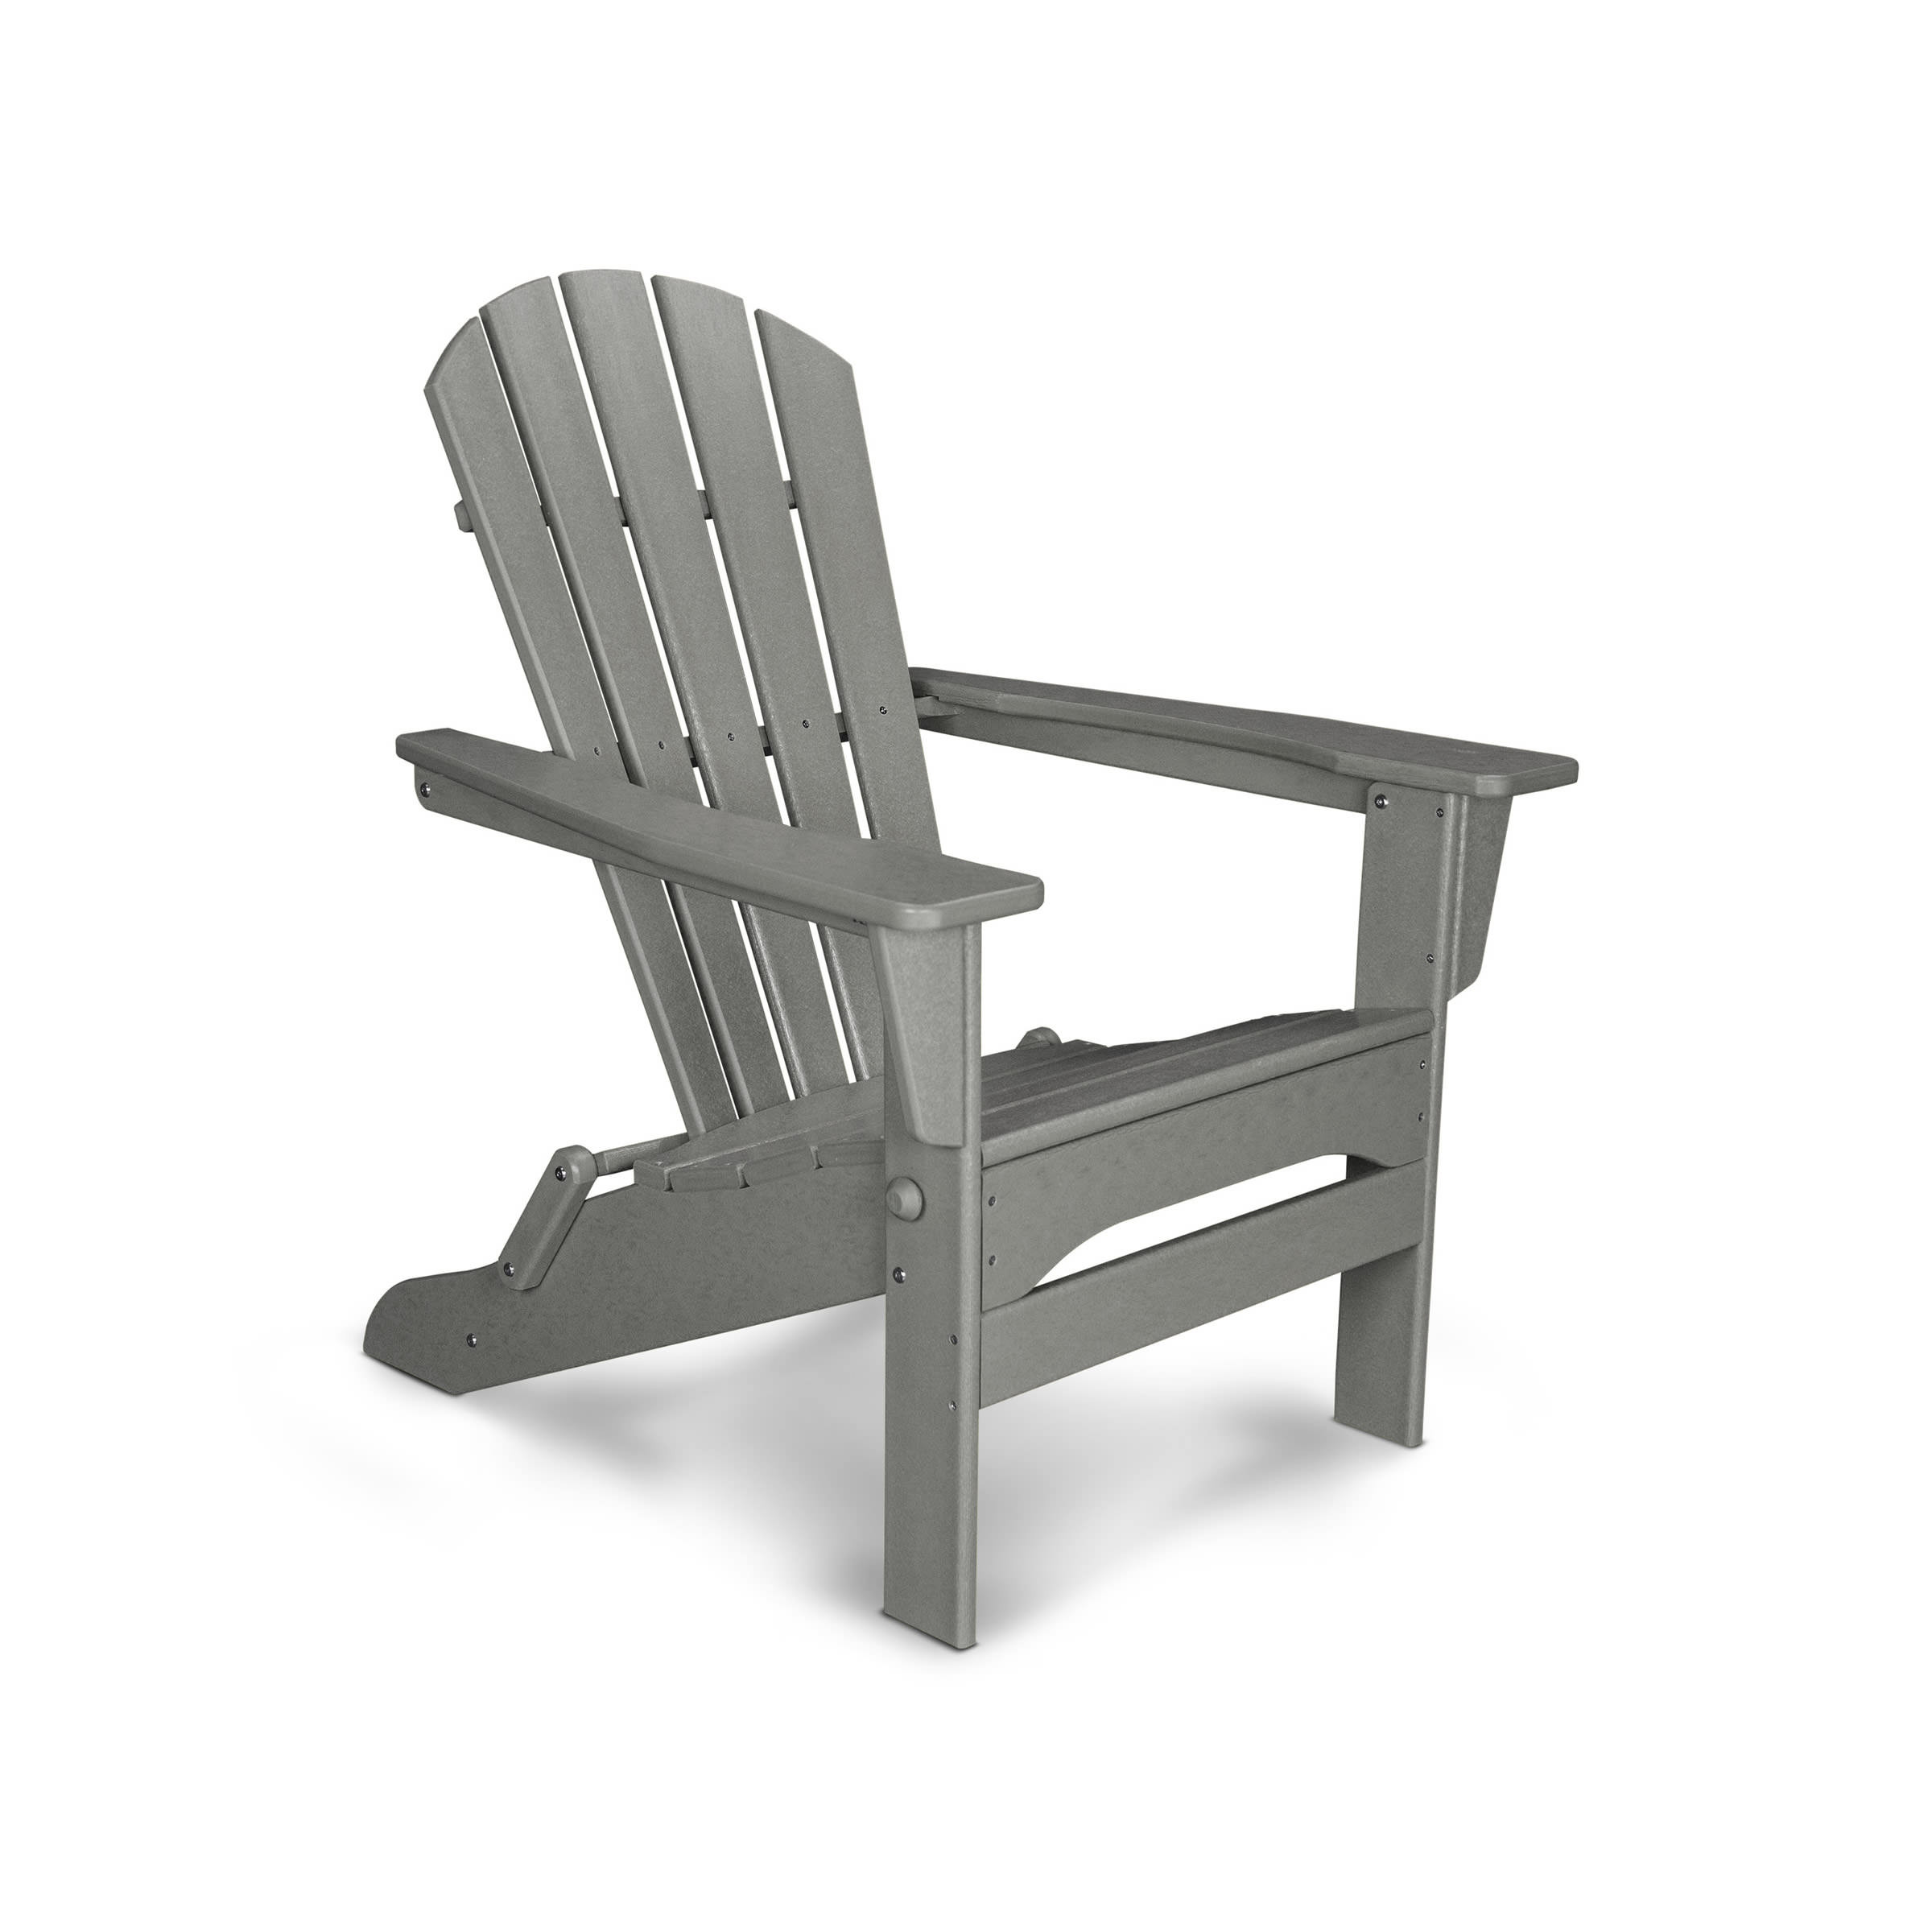 polywood palm coast folding adirondack chair polywood palm coast